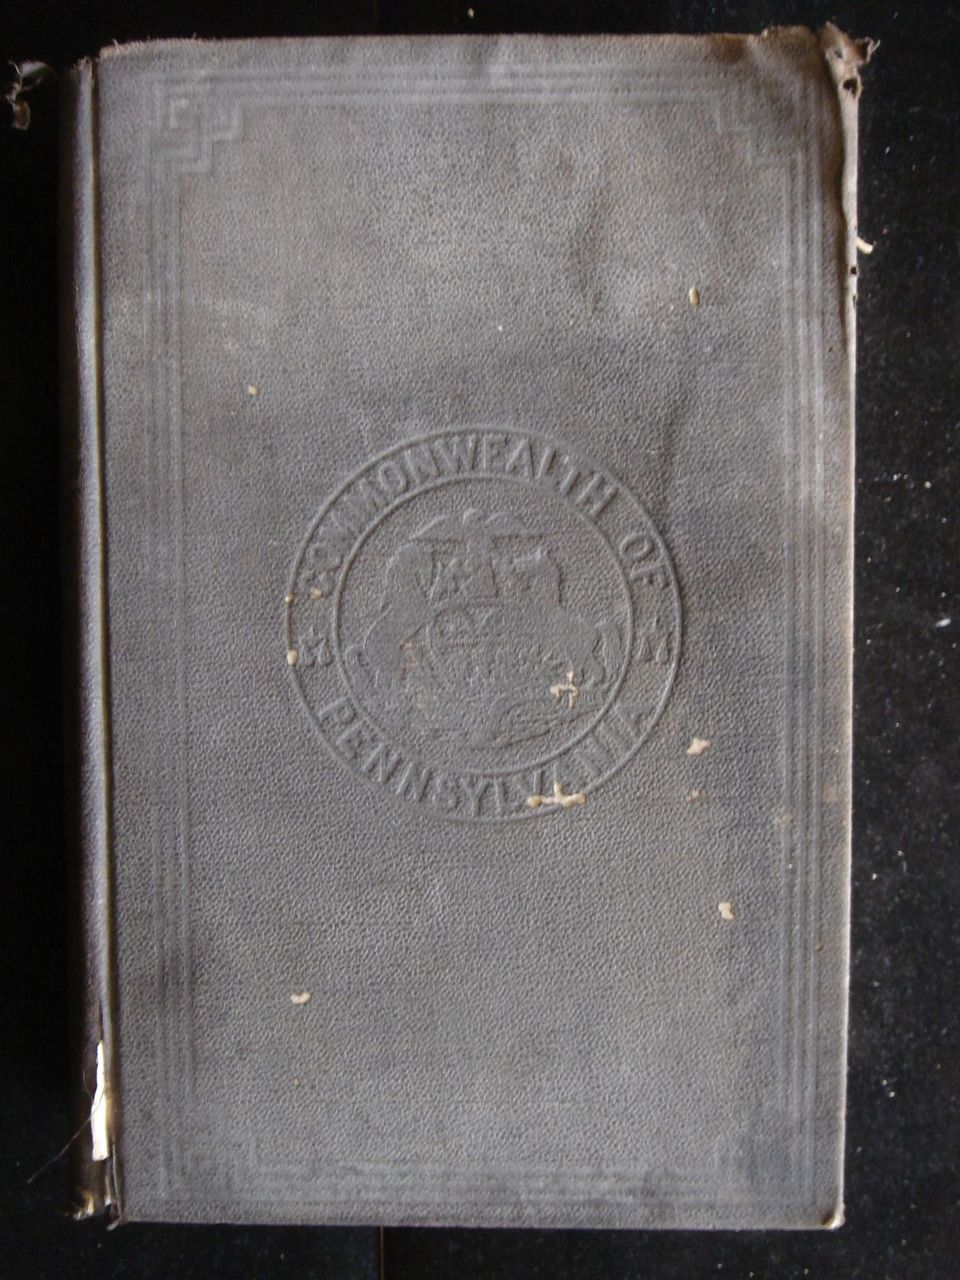 ANNUAL REPORT OF THE AUDITOR GENERAL of PA - 1868